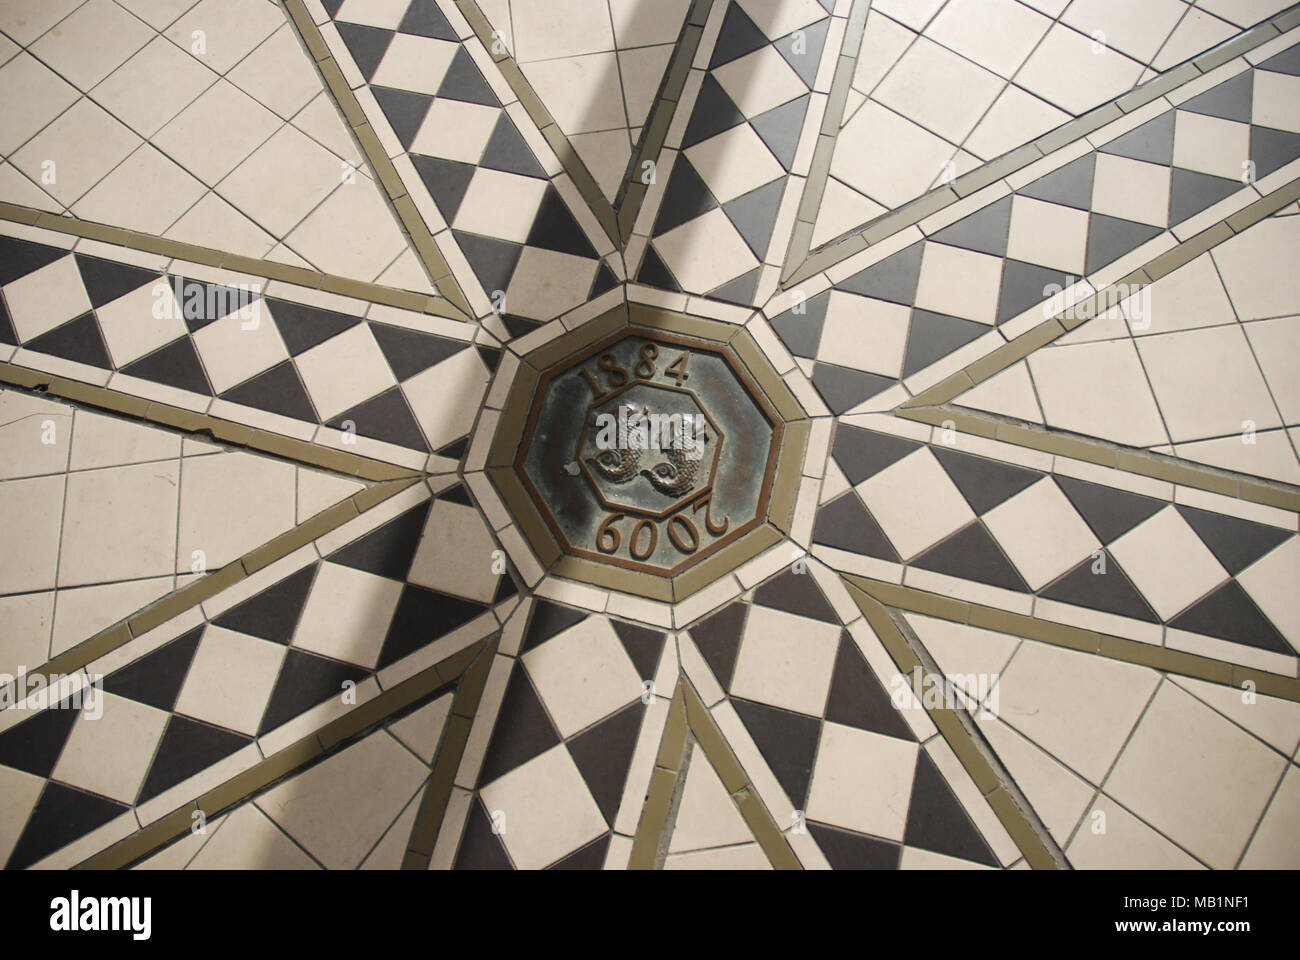 close up picture of the tiled floor centerpiece - The Bandstand Brighton - Stock Image